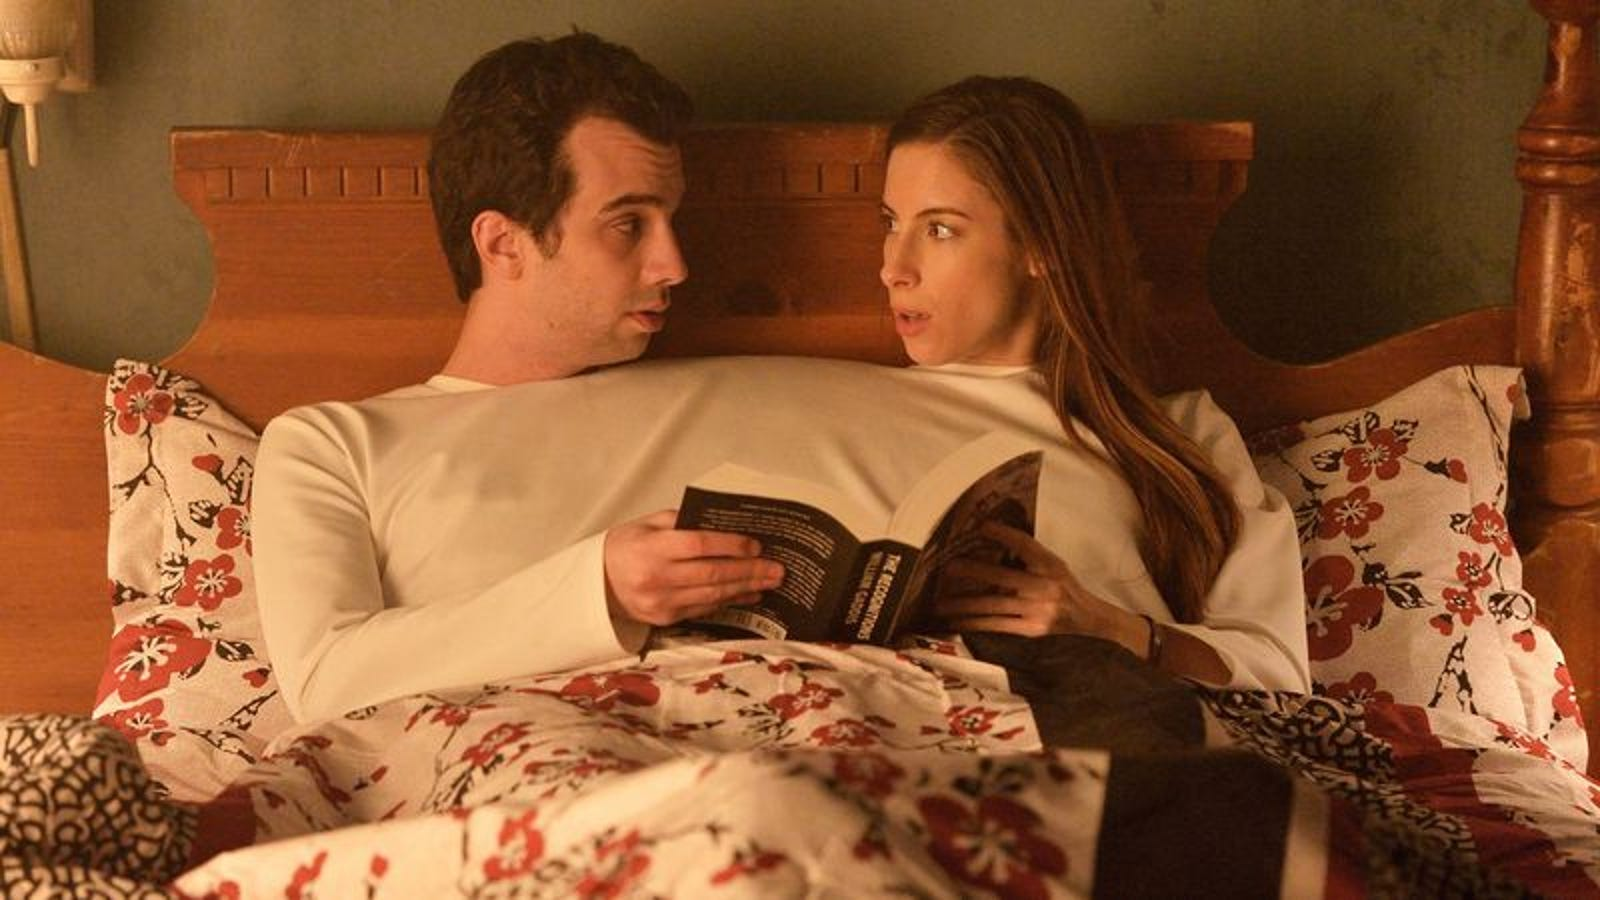 Man seeking women season 1 episode 7 openload